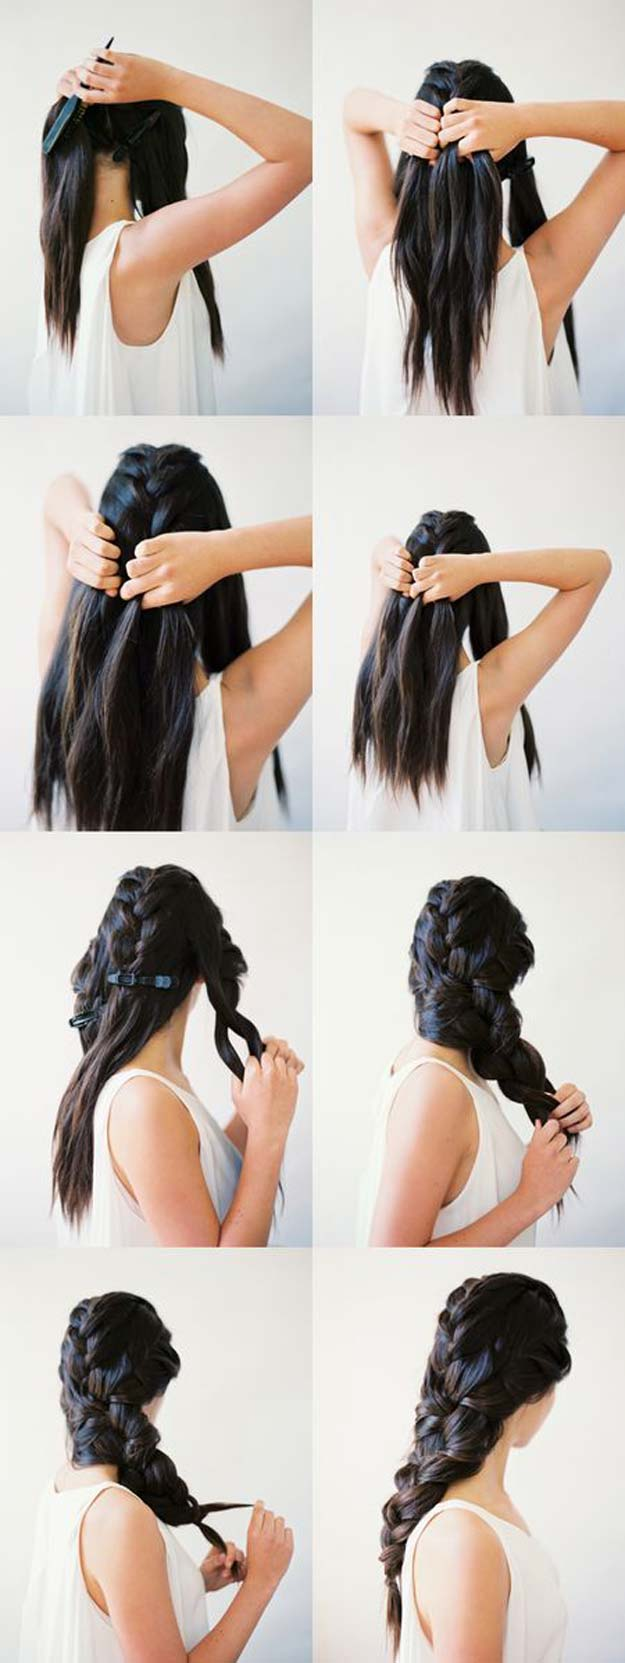 Cool And Easy Diy Hairstyles Stylish Braids Quick Ideas For Back To